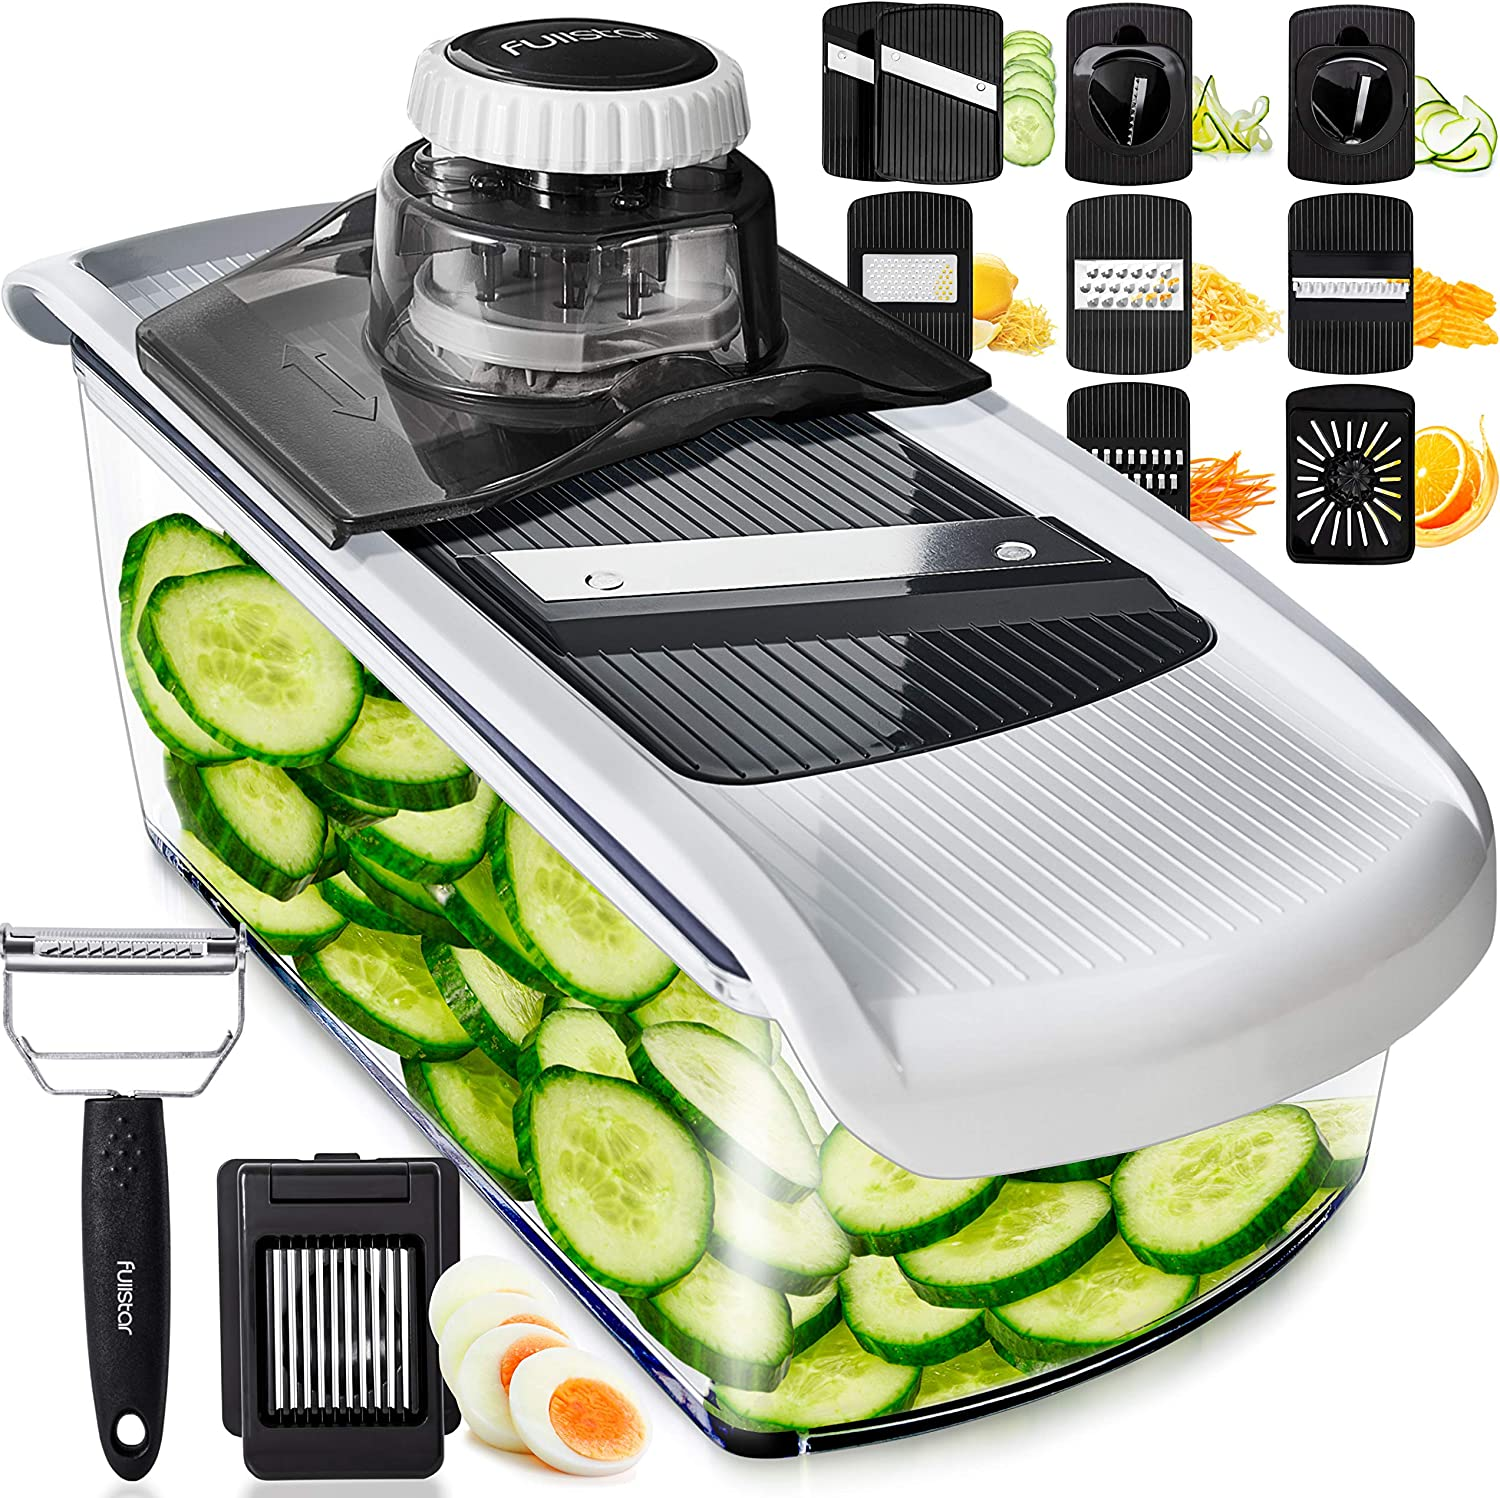 Mandoline Slicer Vegetable Slicer and Vegetable Grater - Potato Slicer Food Slicer Veggie Slicers Mandoline Slicer Cutter Grater - Veggie Slicer Onion Slicer Fruit Slicers for Fruits and Vegetables